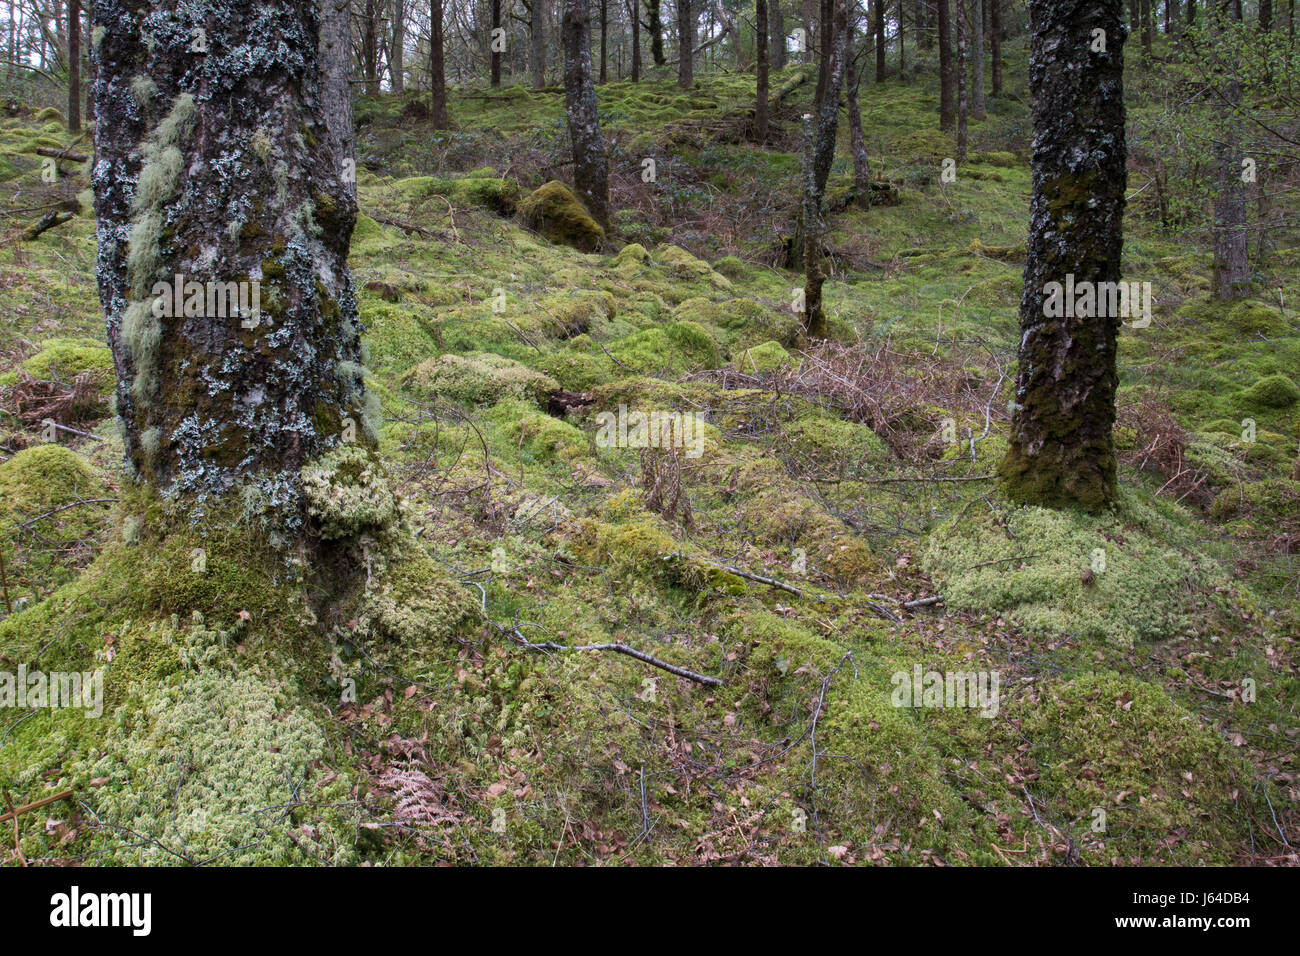 mossy undergrowth in a deciduous temperate rainforest in Snowdonia National Park, Wales Stock Photo